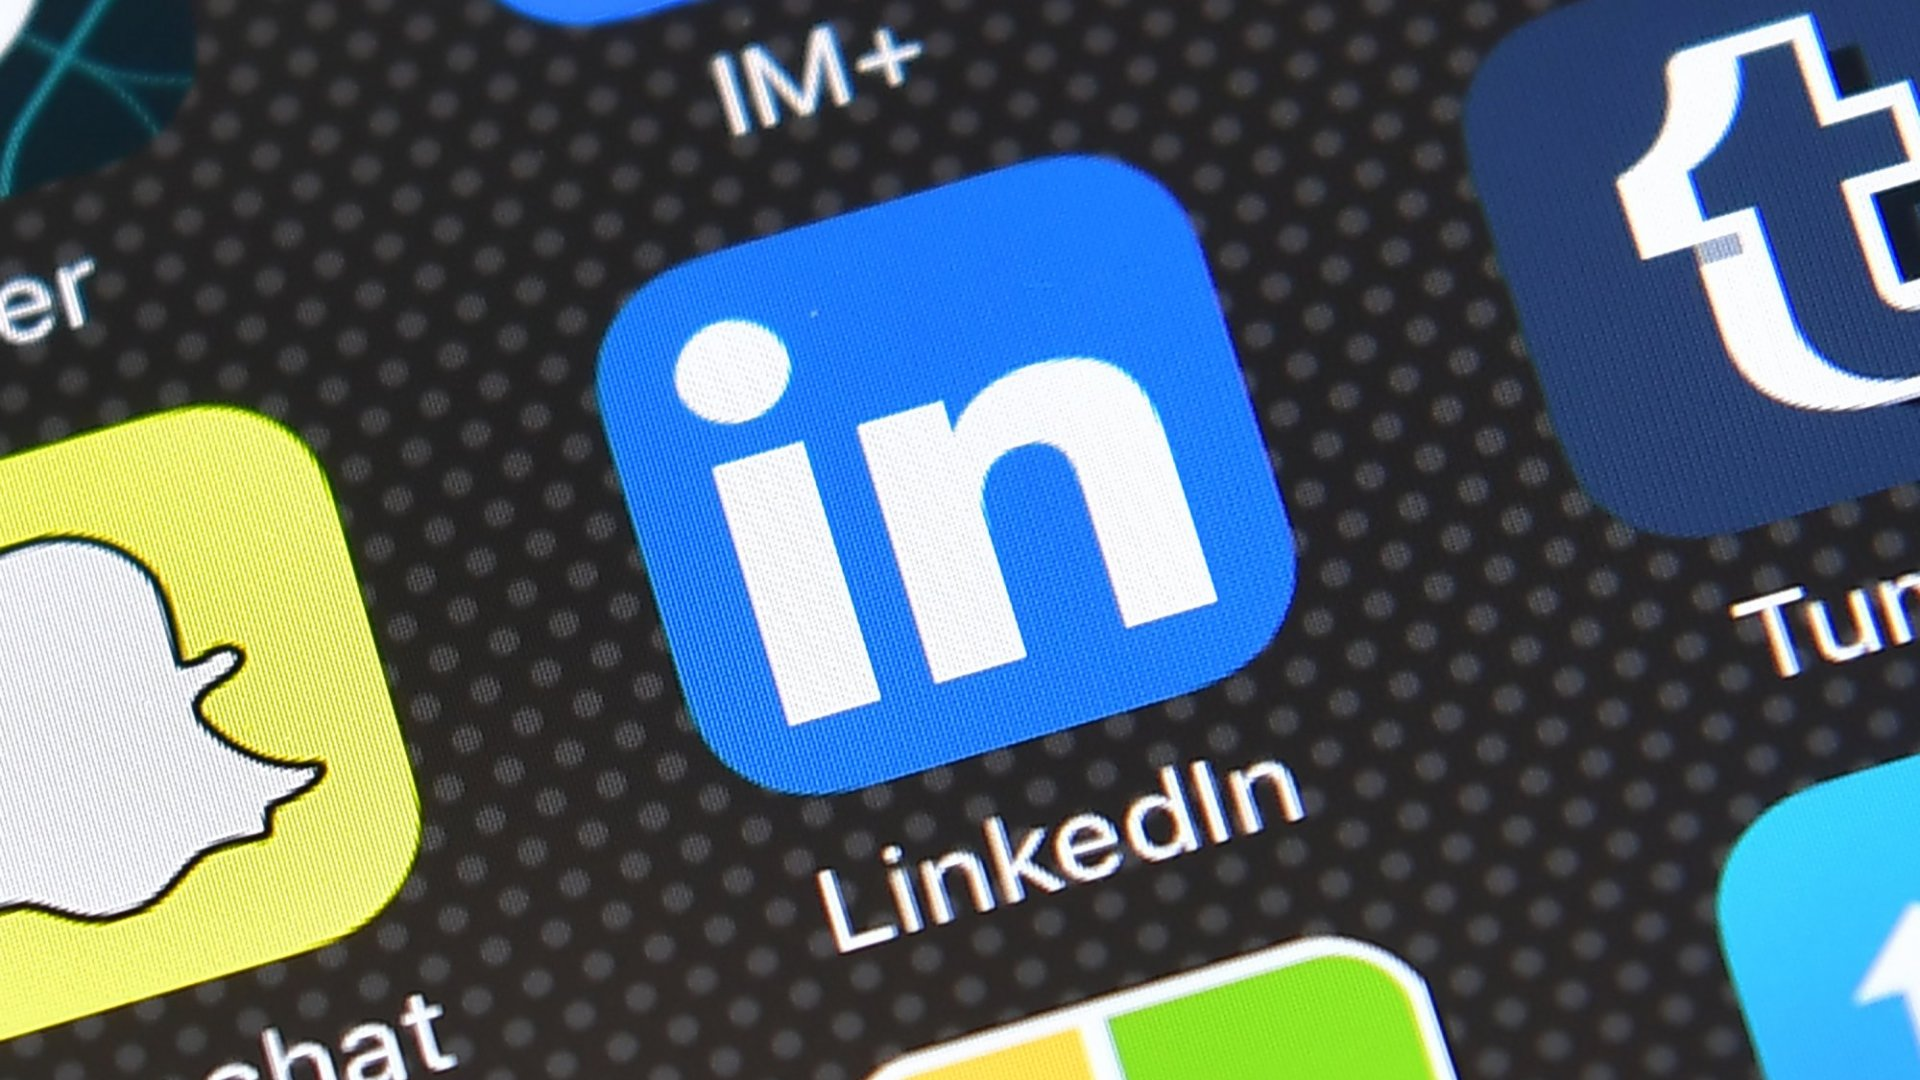 Should You Connect With People You Don't Know on LinkedIn? There's a New (Right) Answer for 2019